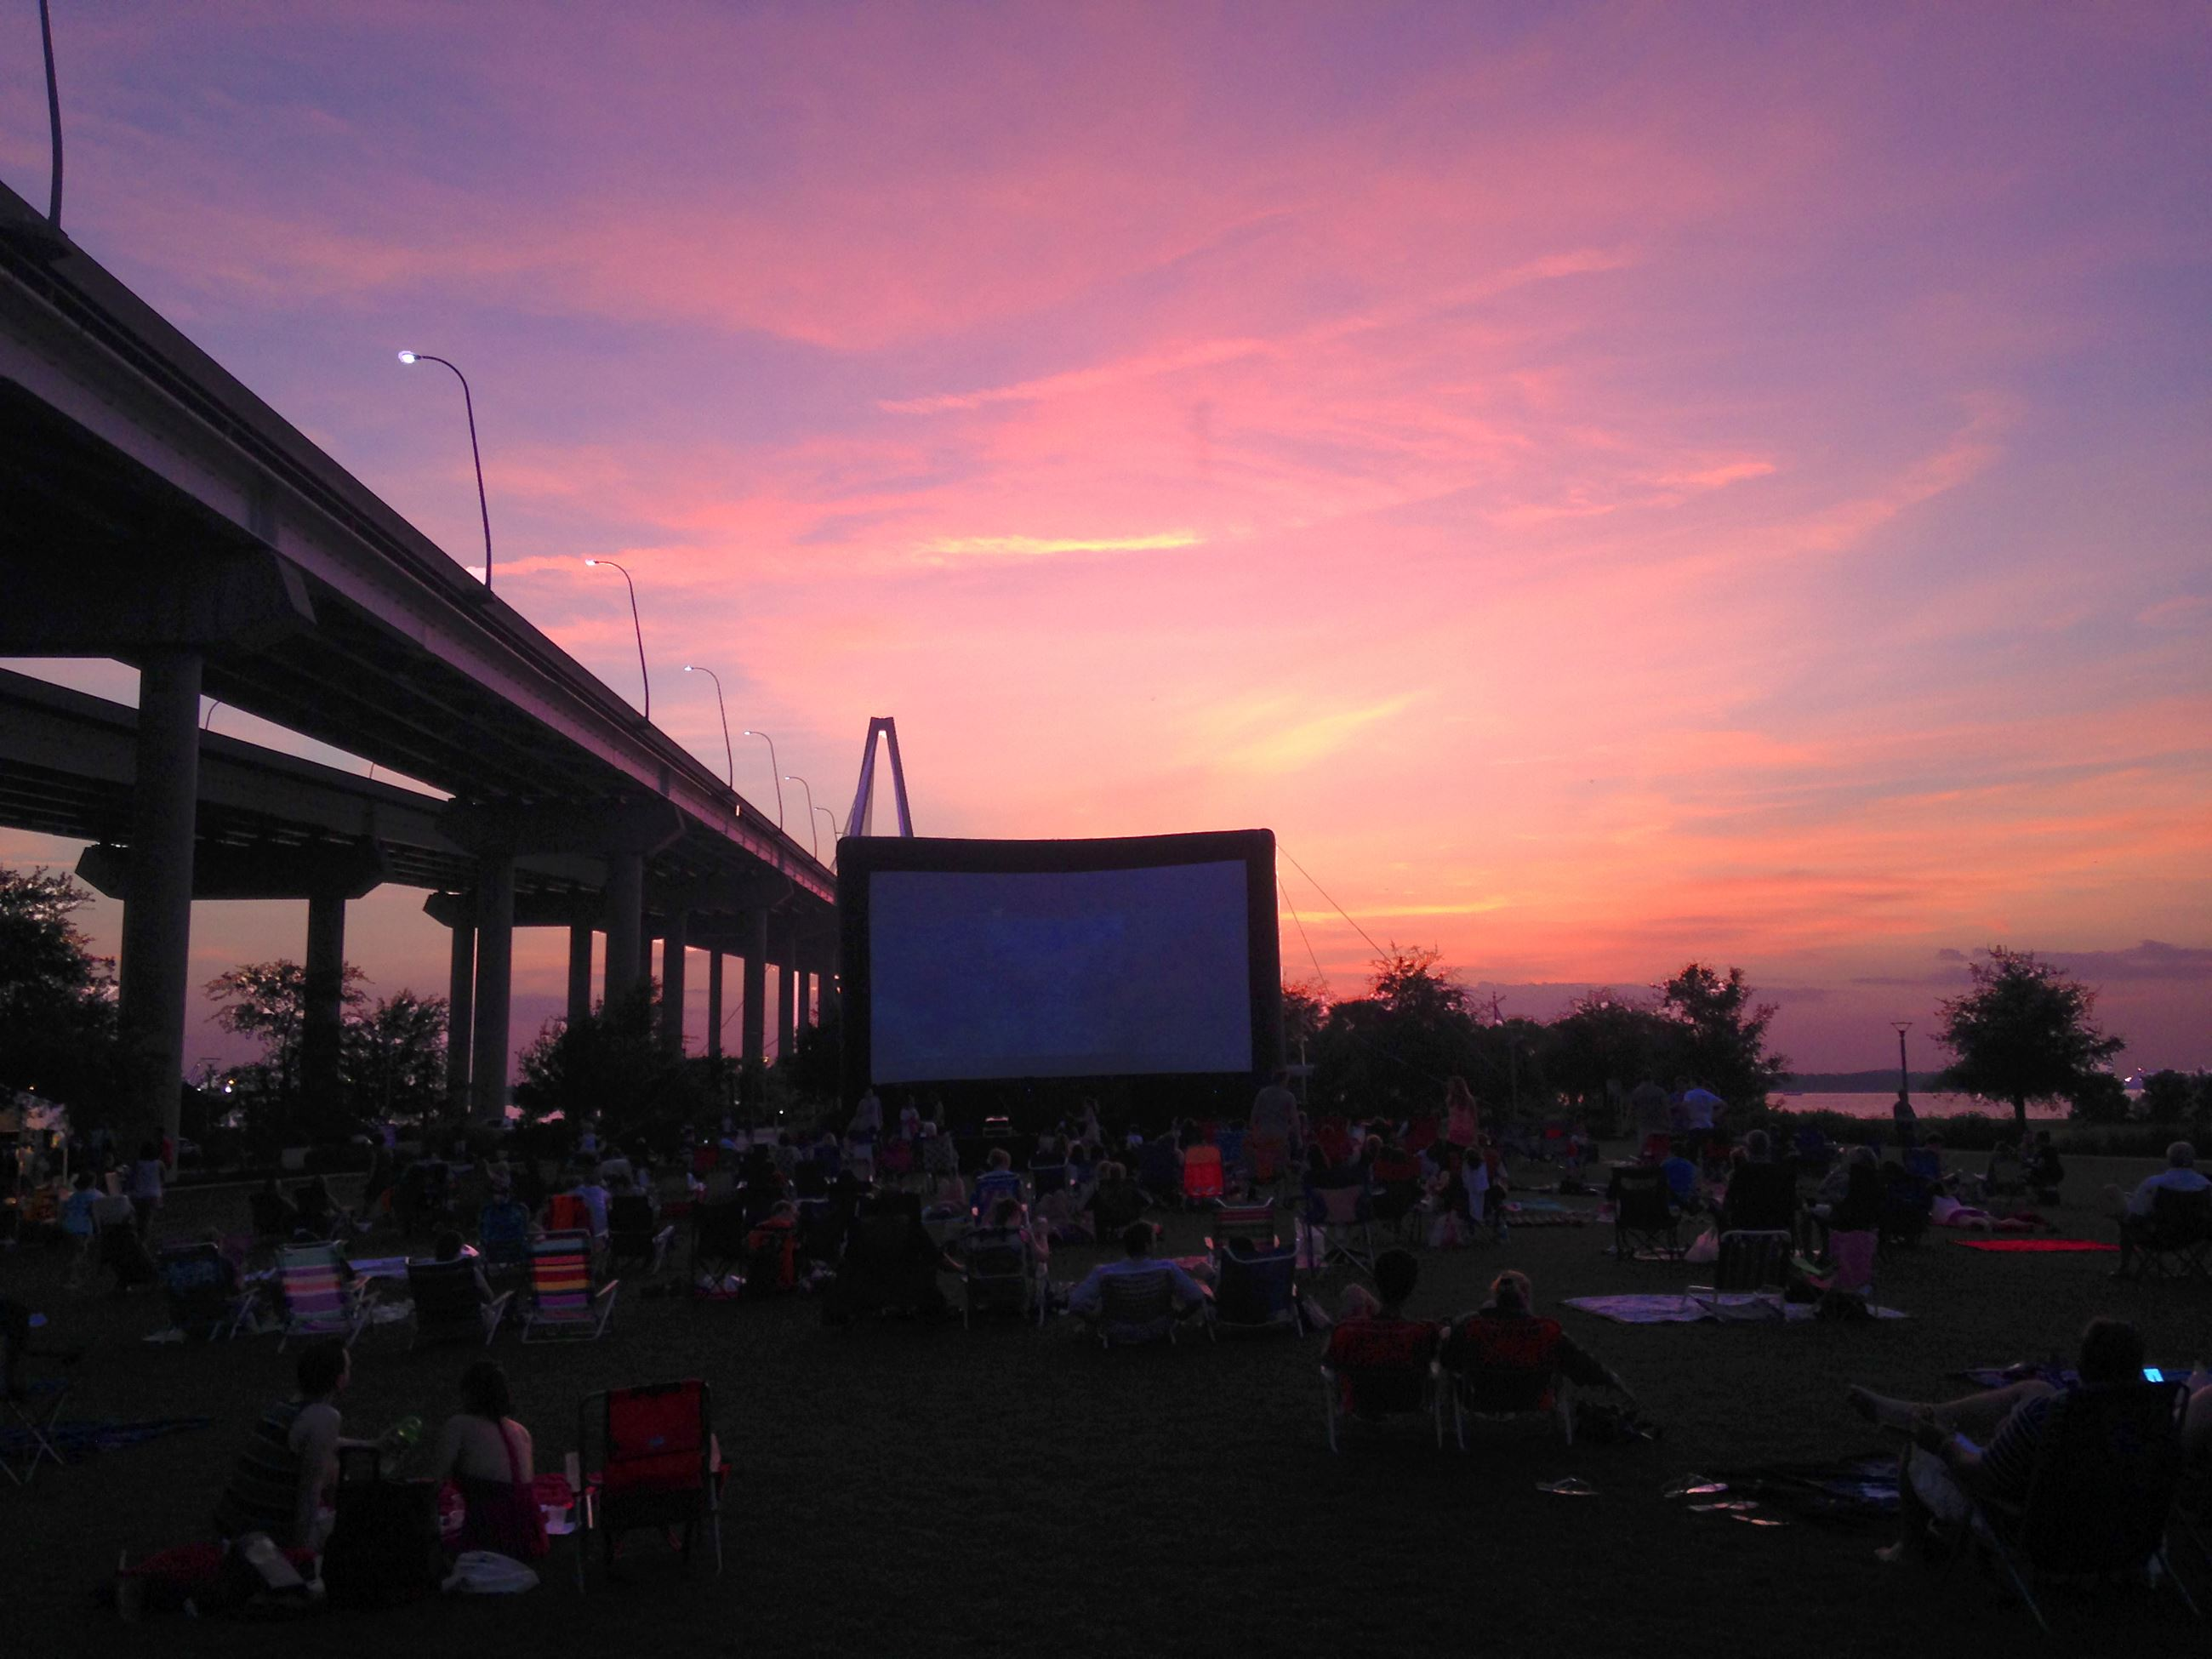 sunset movie